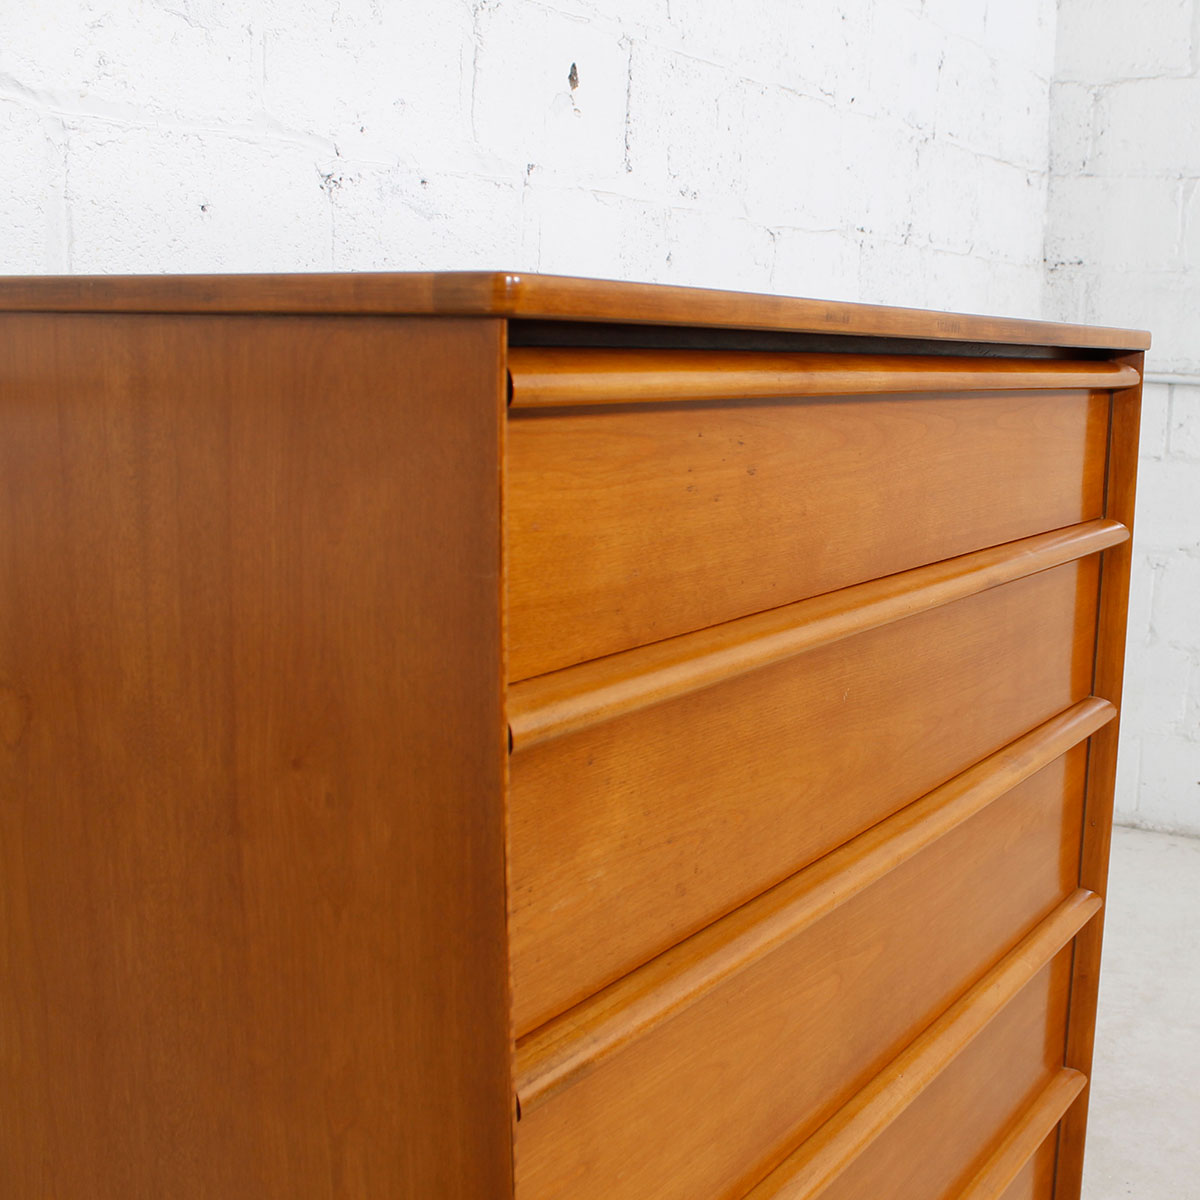 can drawers chest front made rope each and wood is we dresser img say almost s tall furniture drawer deep massive of what wide solid houston it this with inches